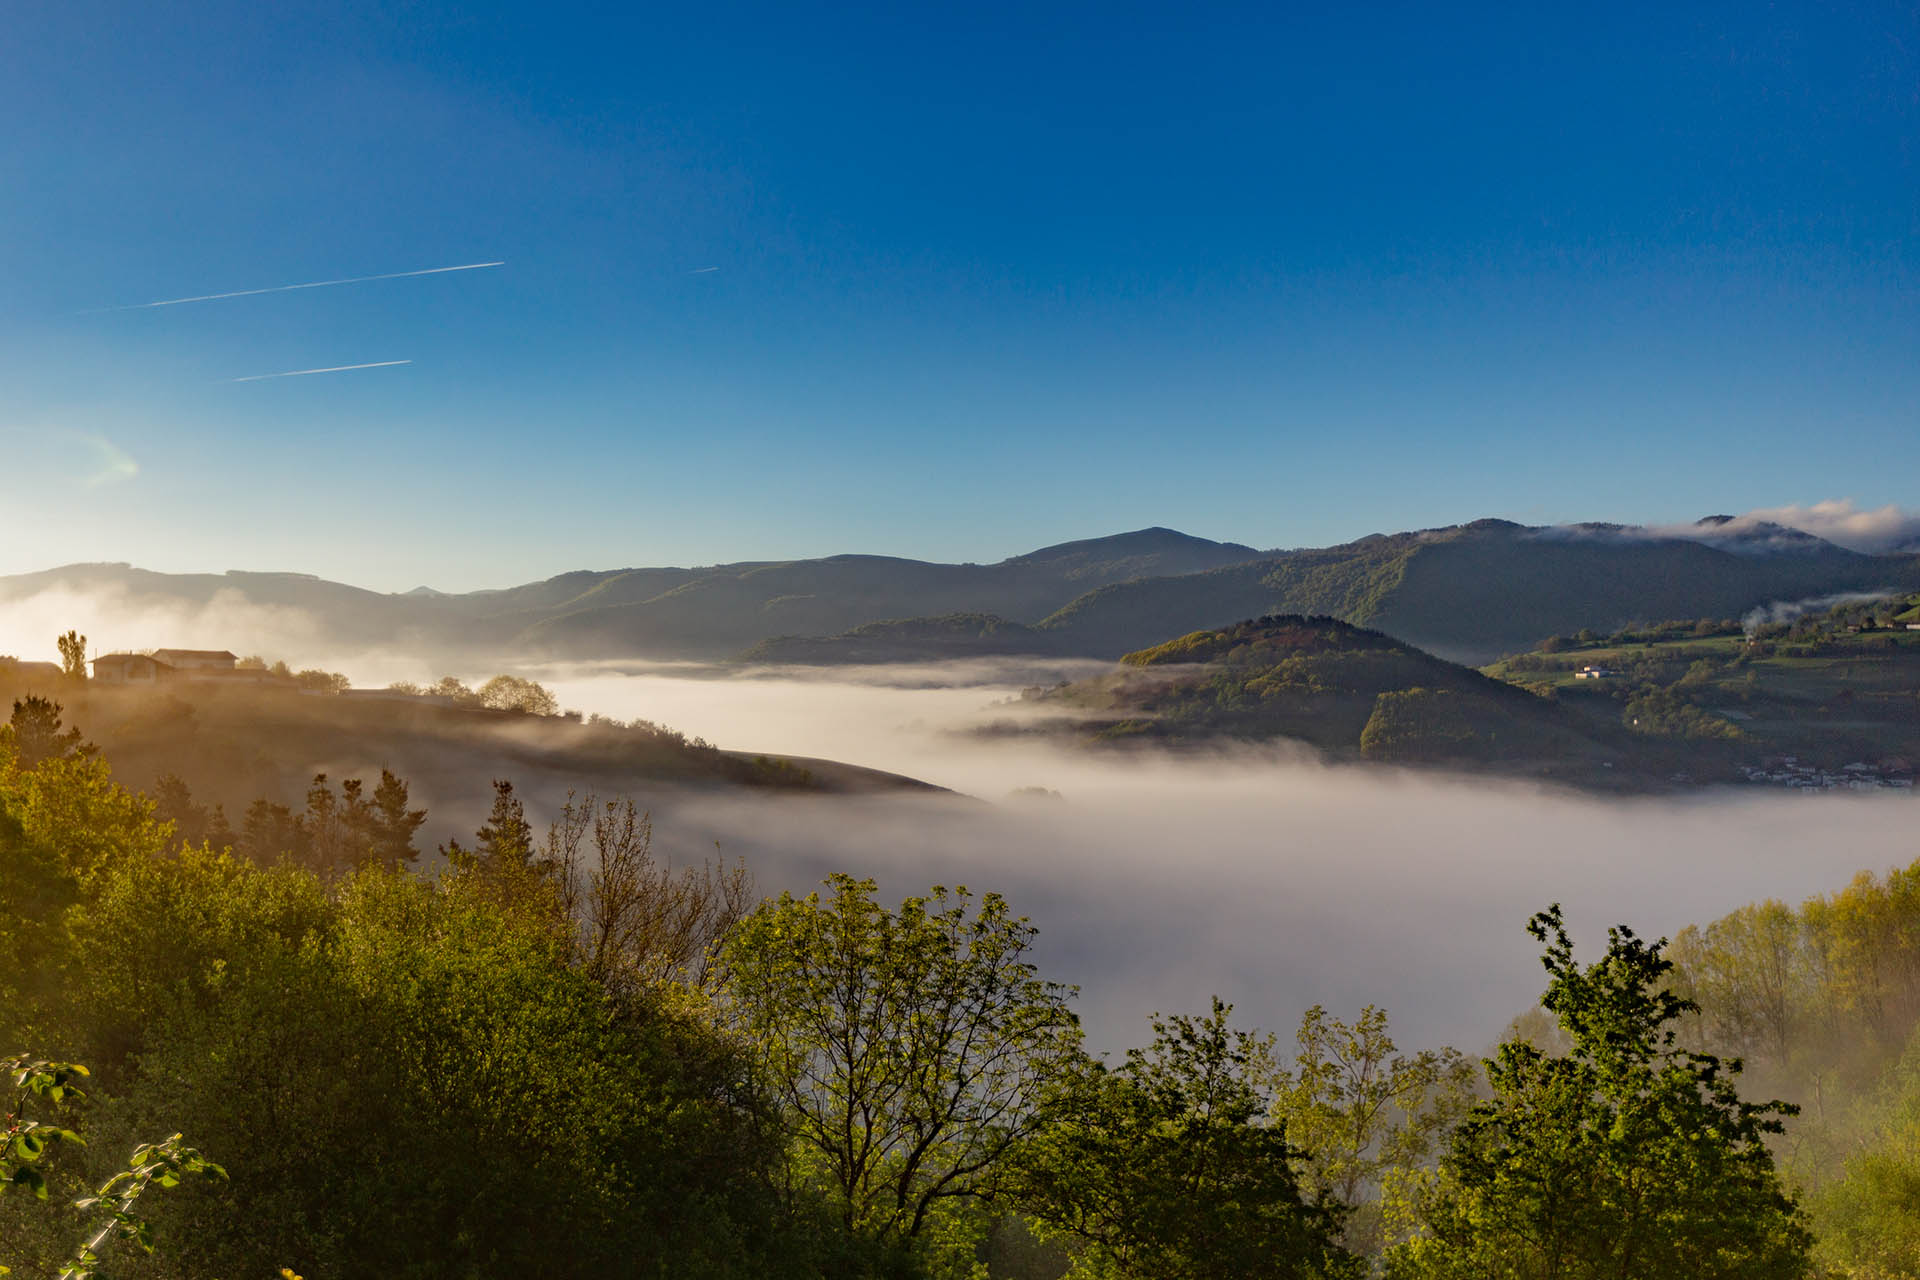 Morning mist during the walking holidays in the Pyrenees